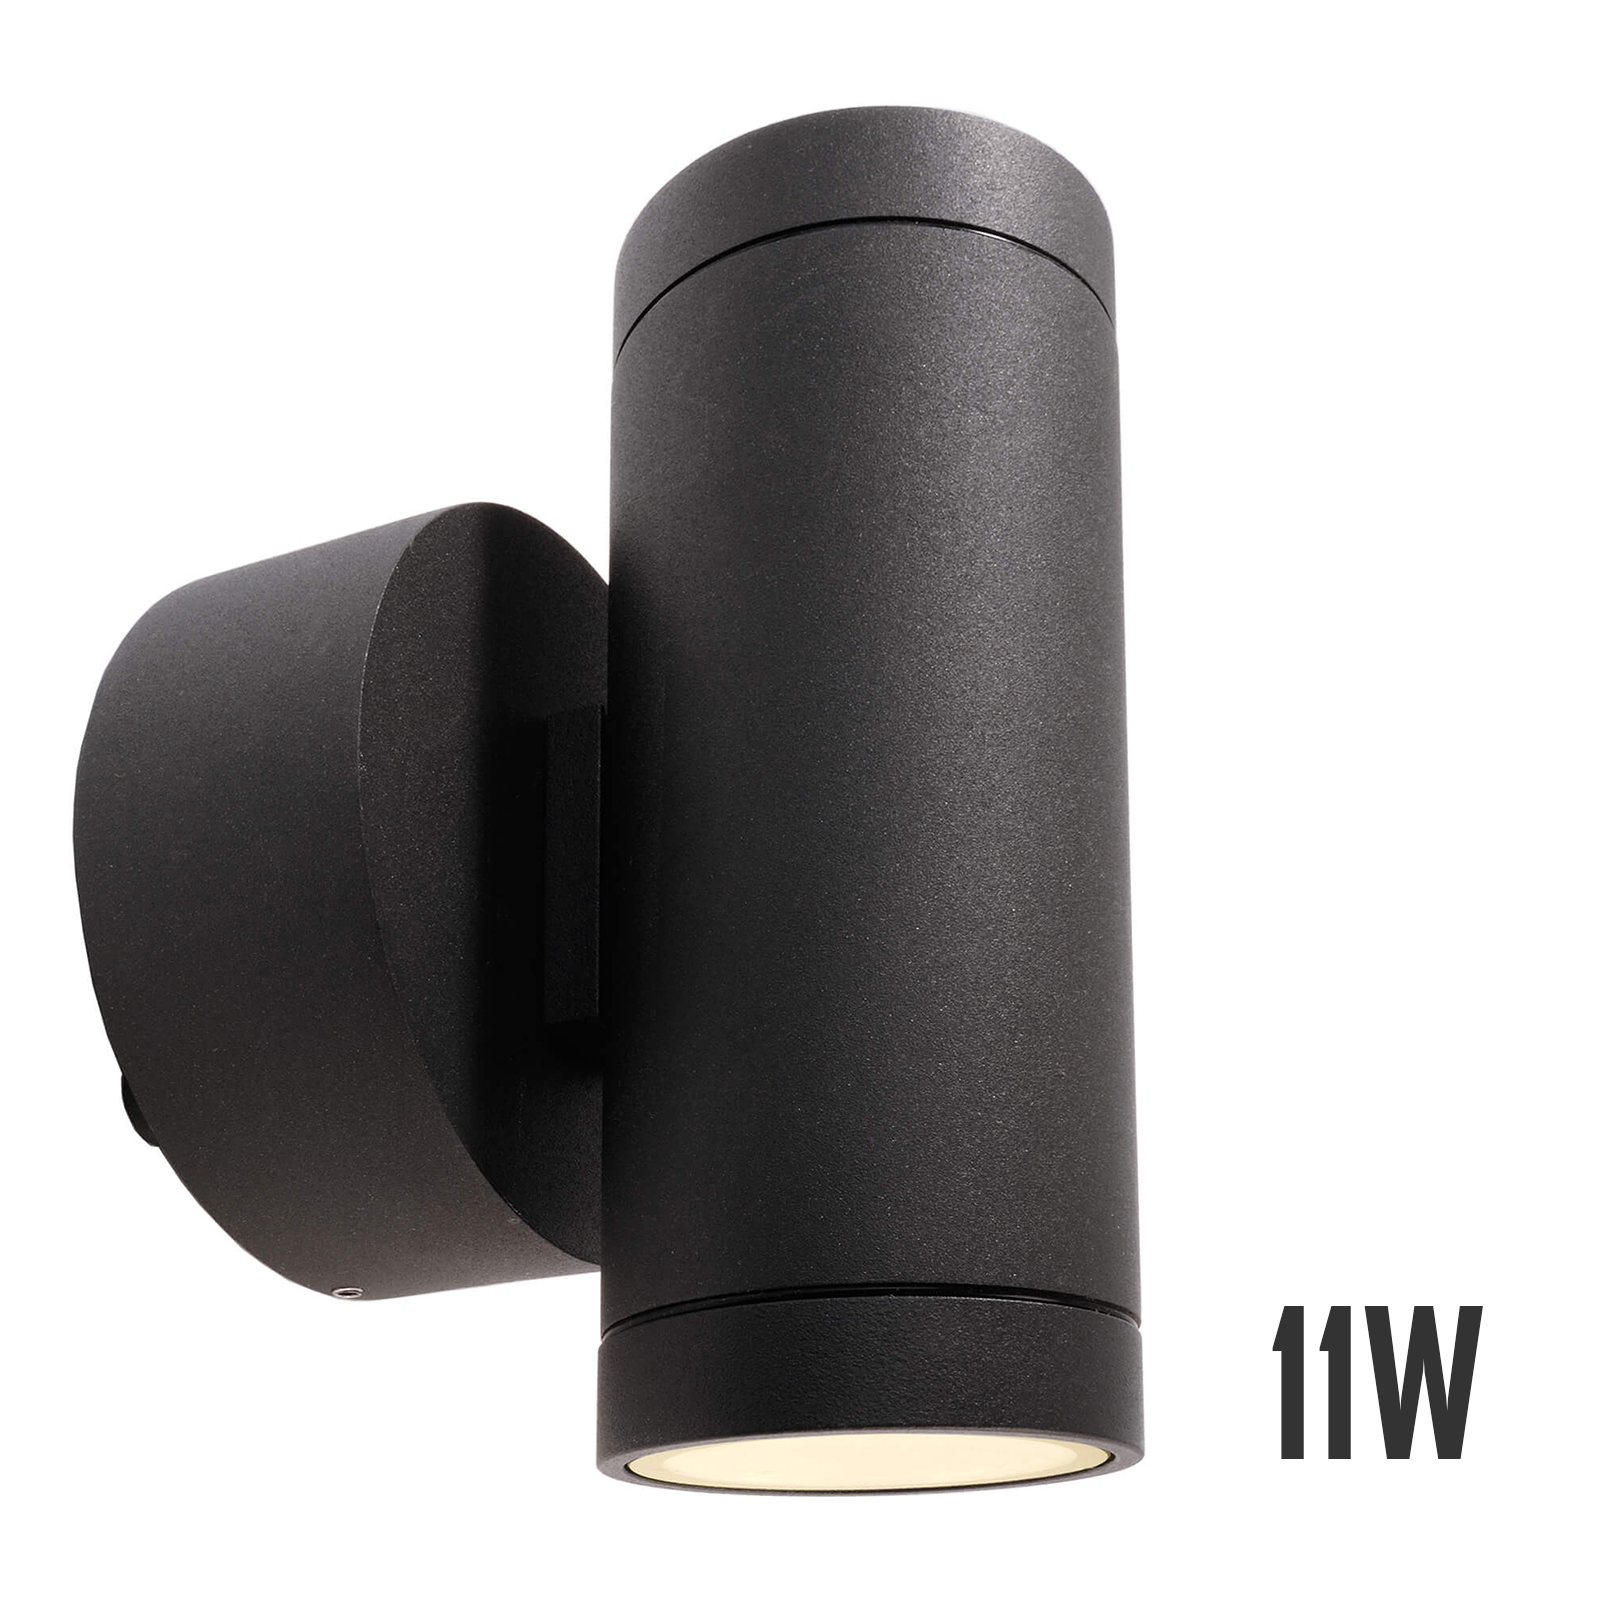 Applique LED 11W lamp wall outdoor double emission light 3000K 795lm IP55